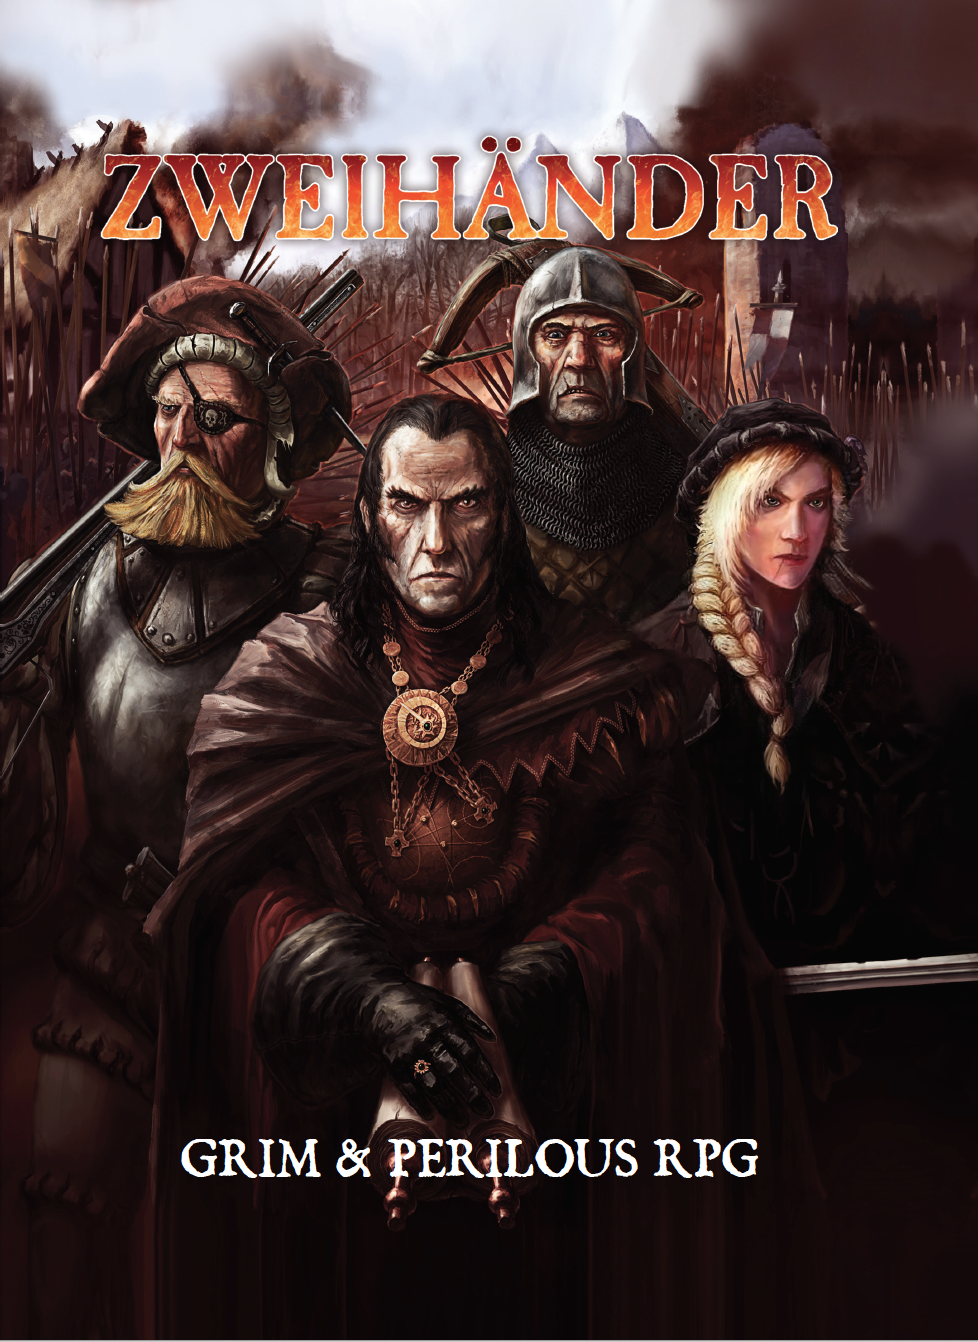 ennies awards 2018 best game product of the year zweihander rpg grim and perilous rpg Warhammer Fantasy Roleplay Fourth Edition Cubicle 7 Zweihander Grim & Perilous RPG DriveThruRPG.com RPGNow.com grimandperilous.com warhammerfantasyroleplay.com